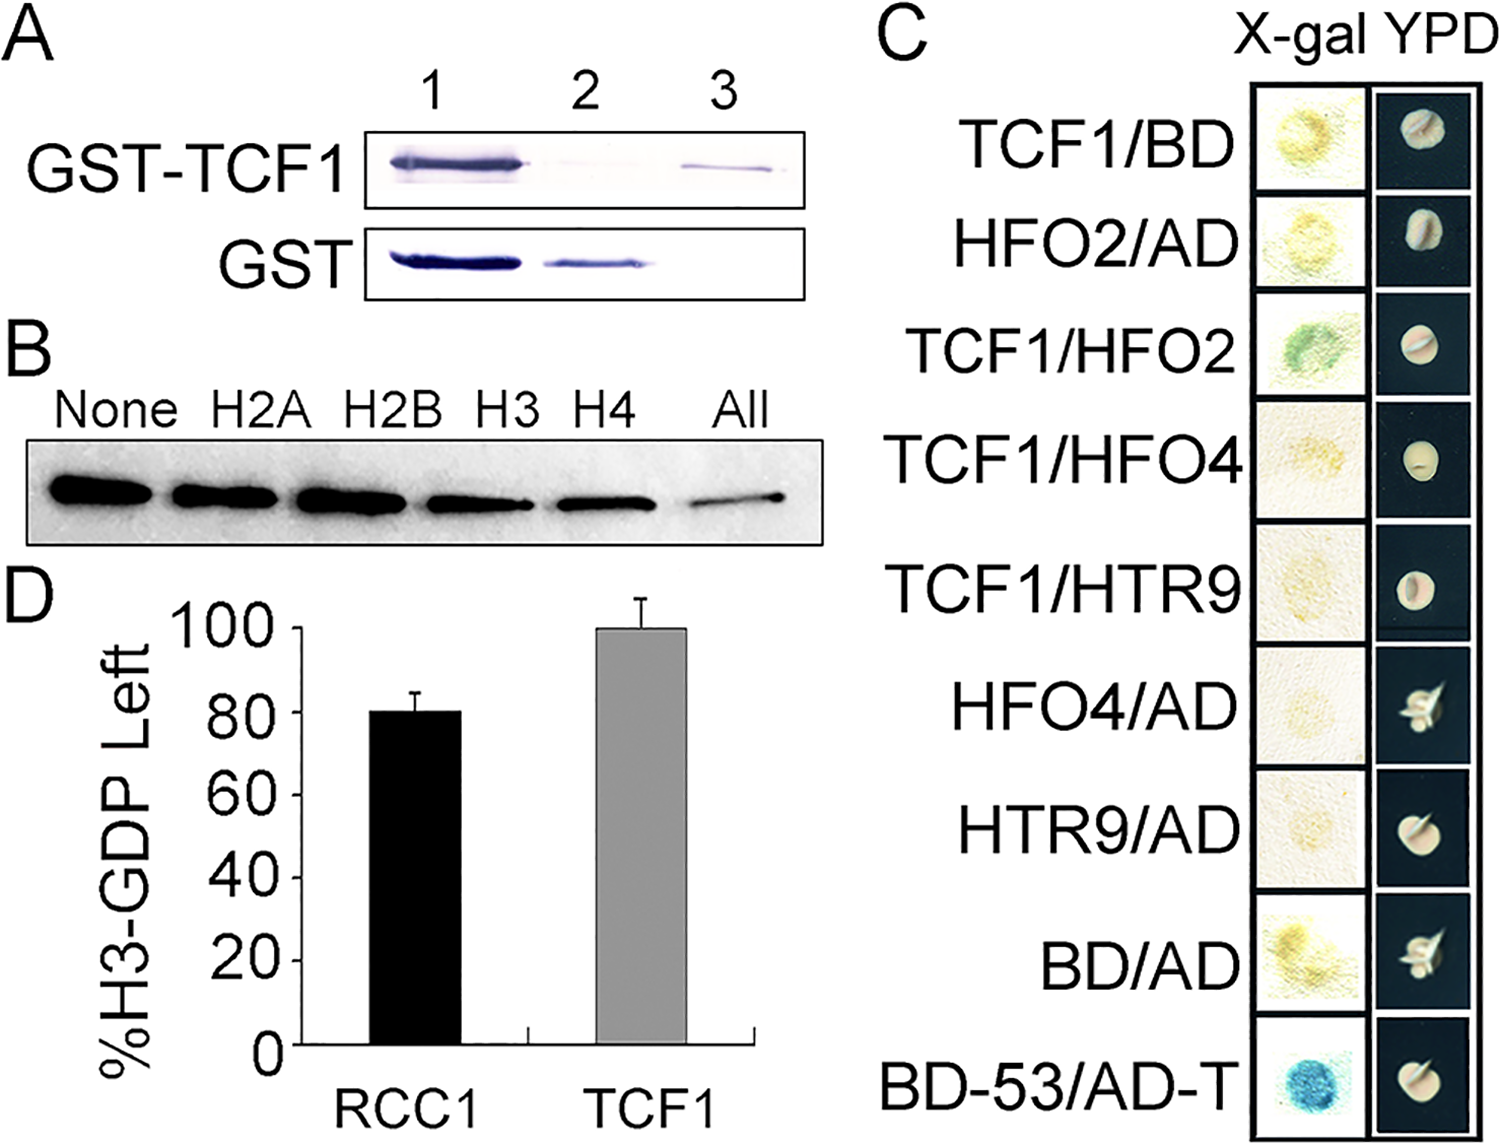 GEF activity assay of TCF1 and analysis of TCF1-histone interactions.